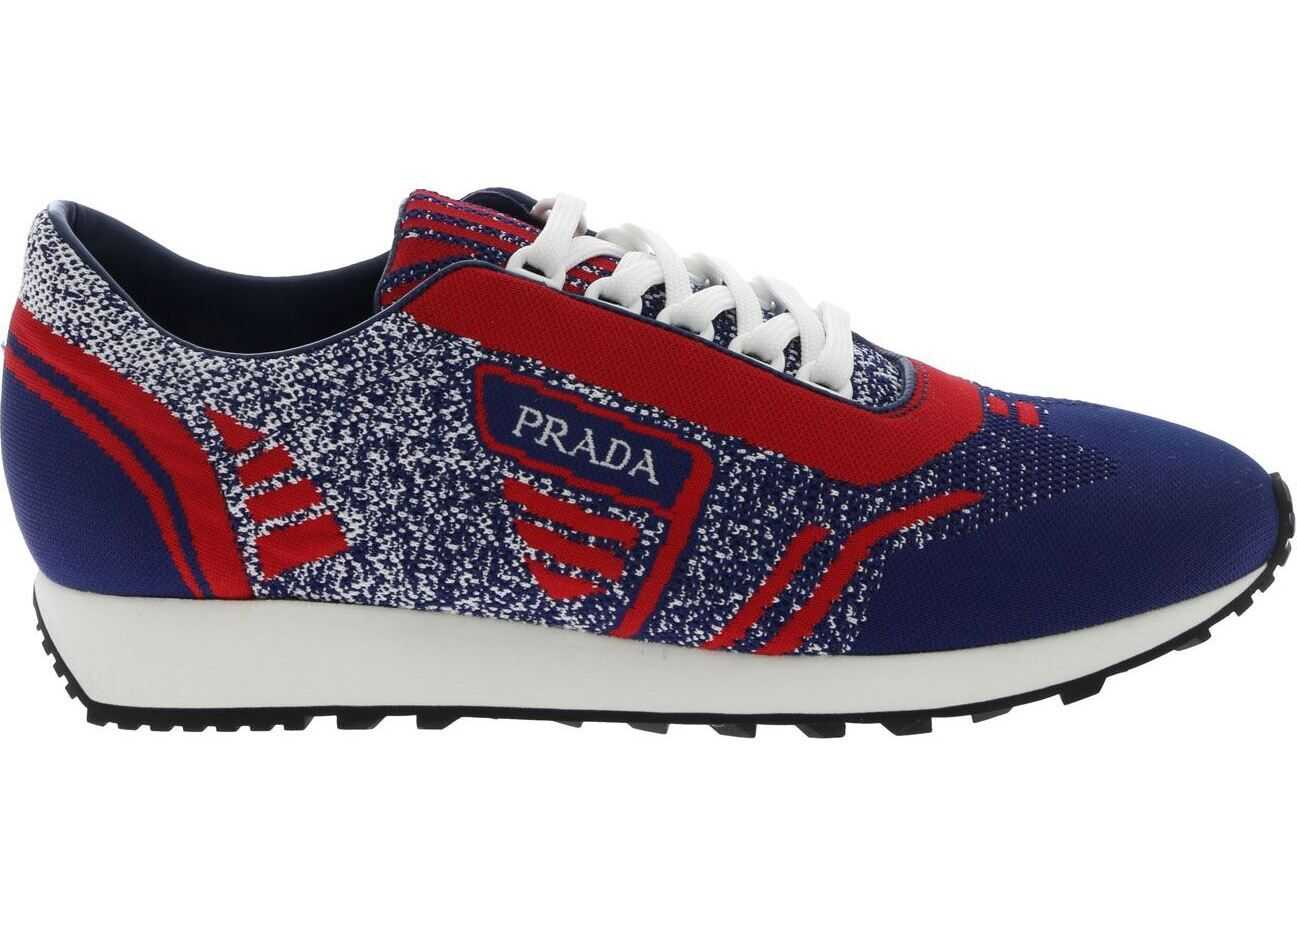 Prada Knit 5 Sneakers In Blue And Red Blue